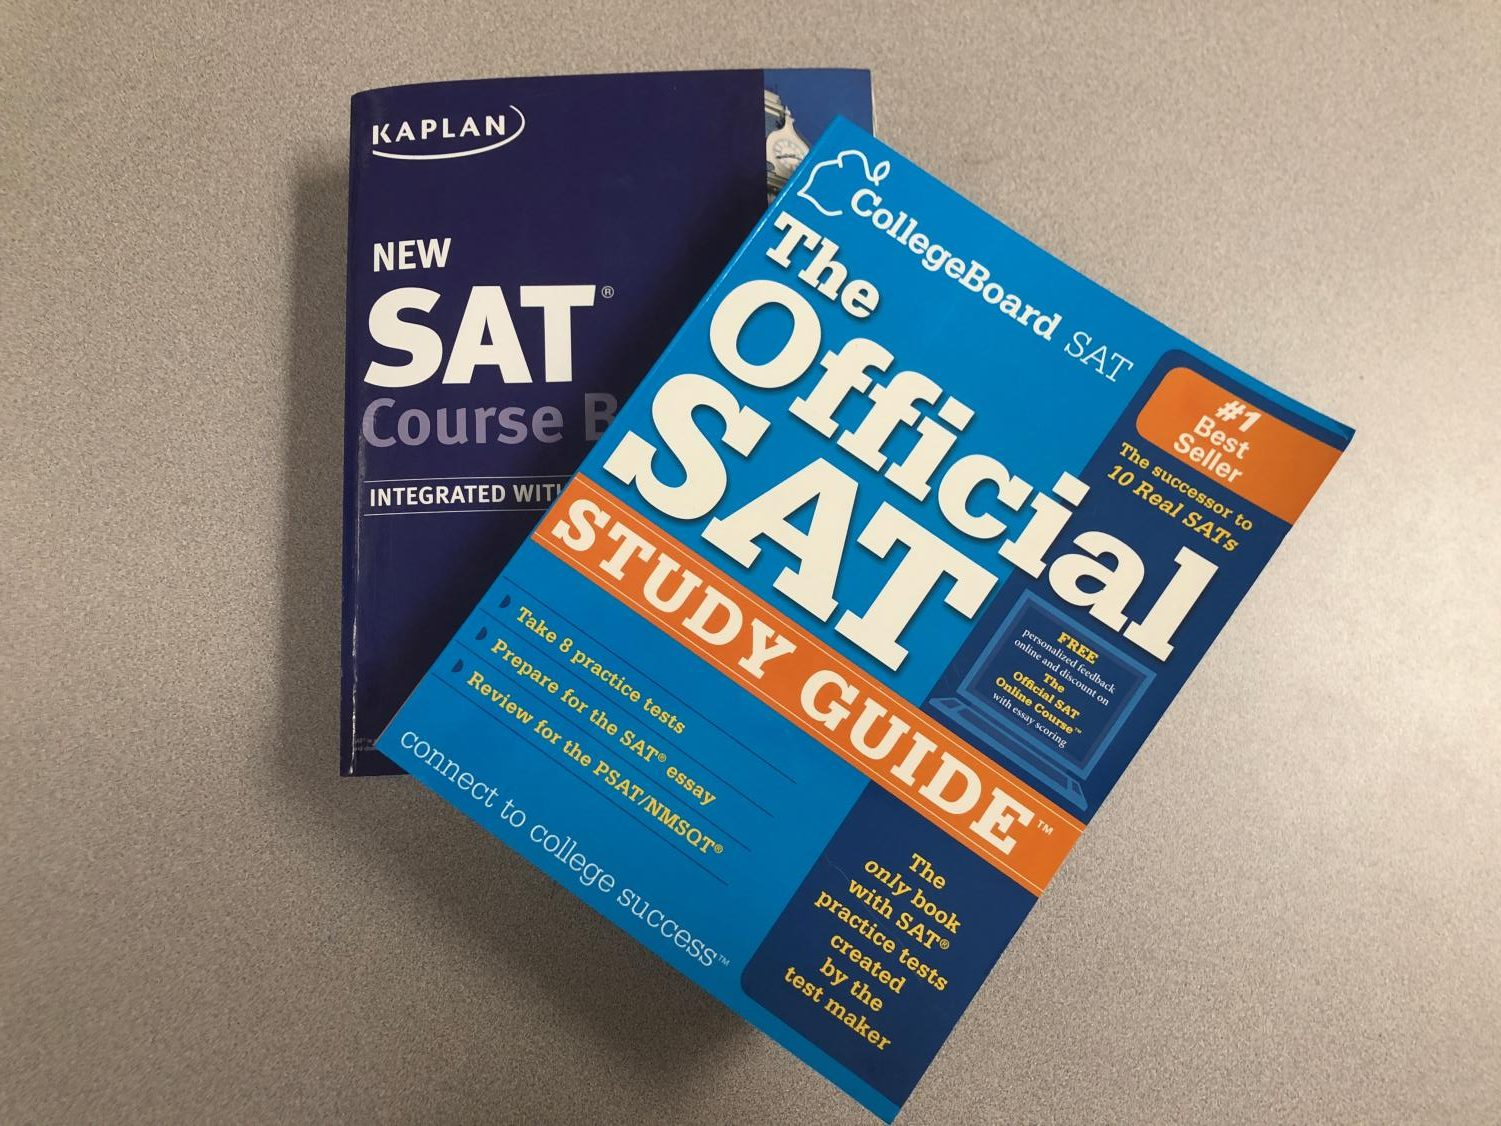 The College and Career Center has SAT books available for students to borrow.